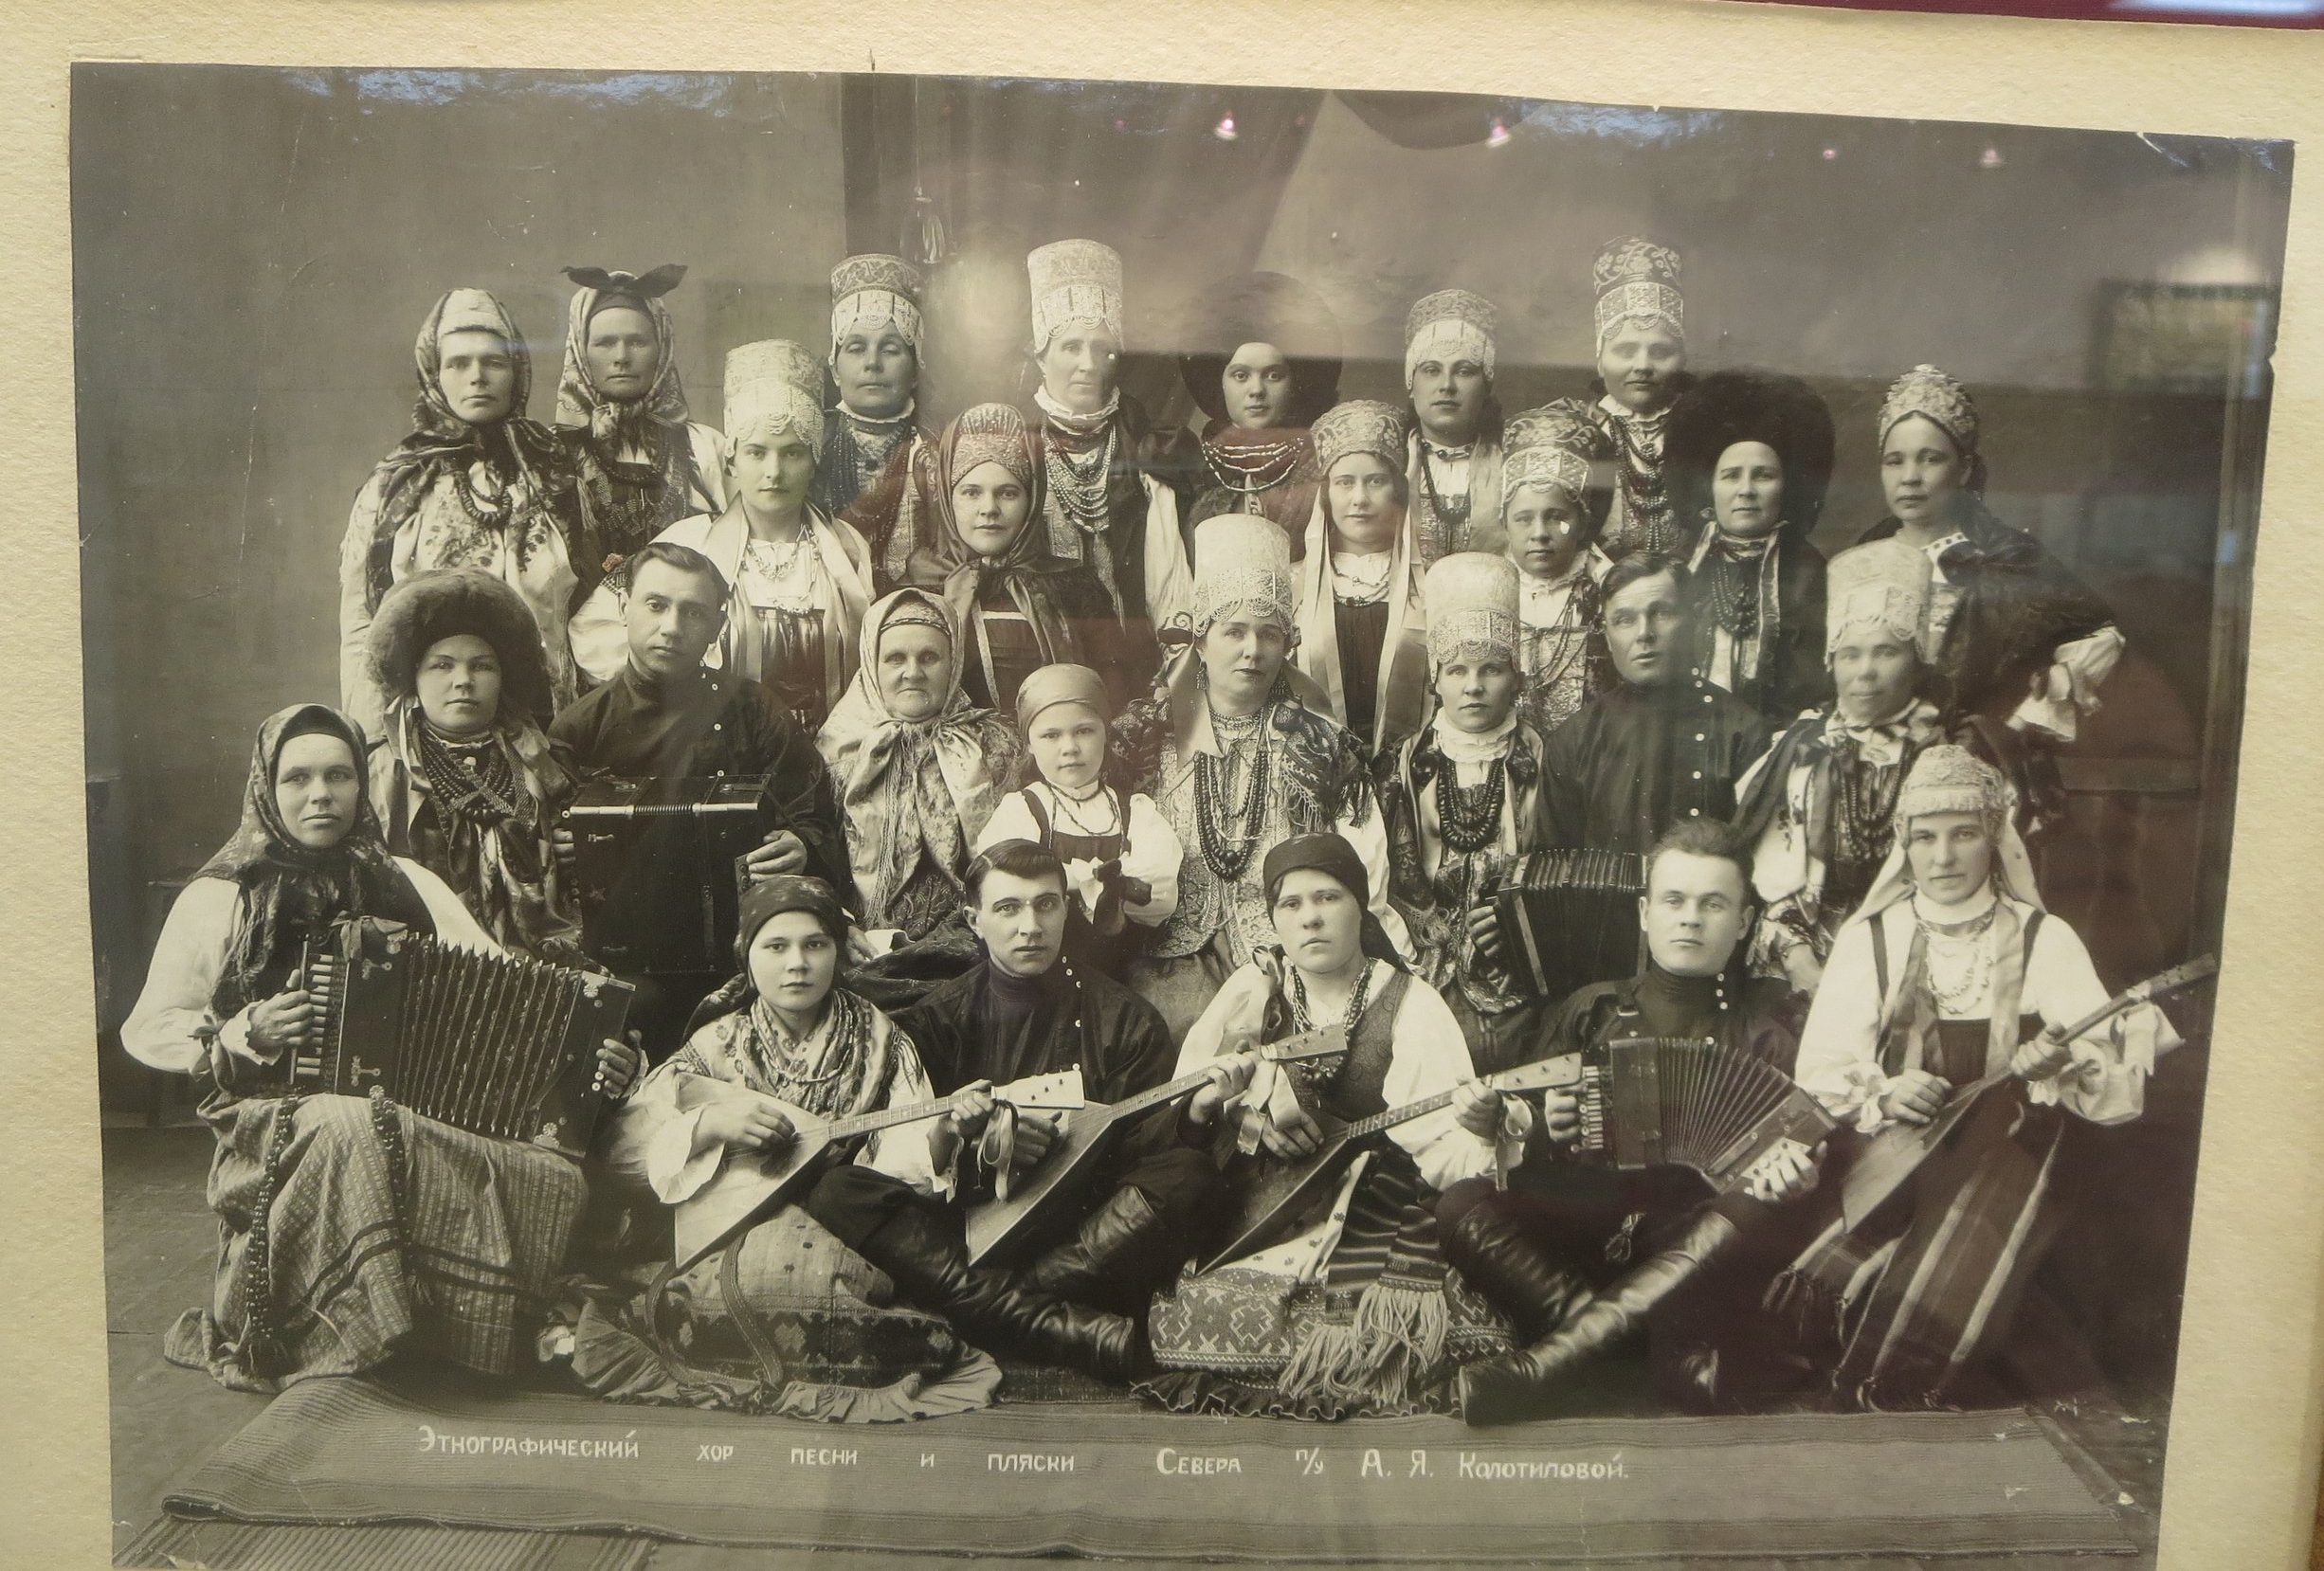 The Northern Folk Choir was started in 1926 by Antonina Kolotilova. This is a photograph in the Choir's museum.